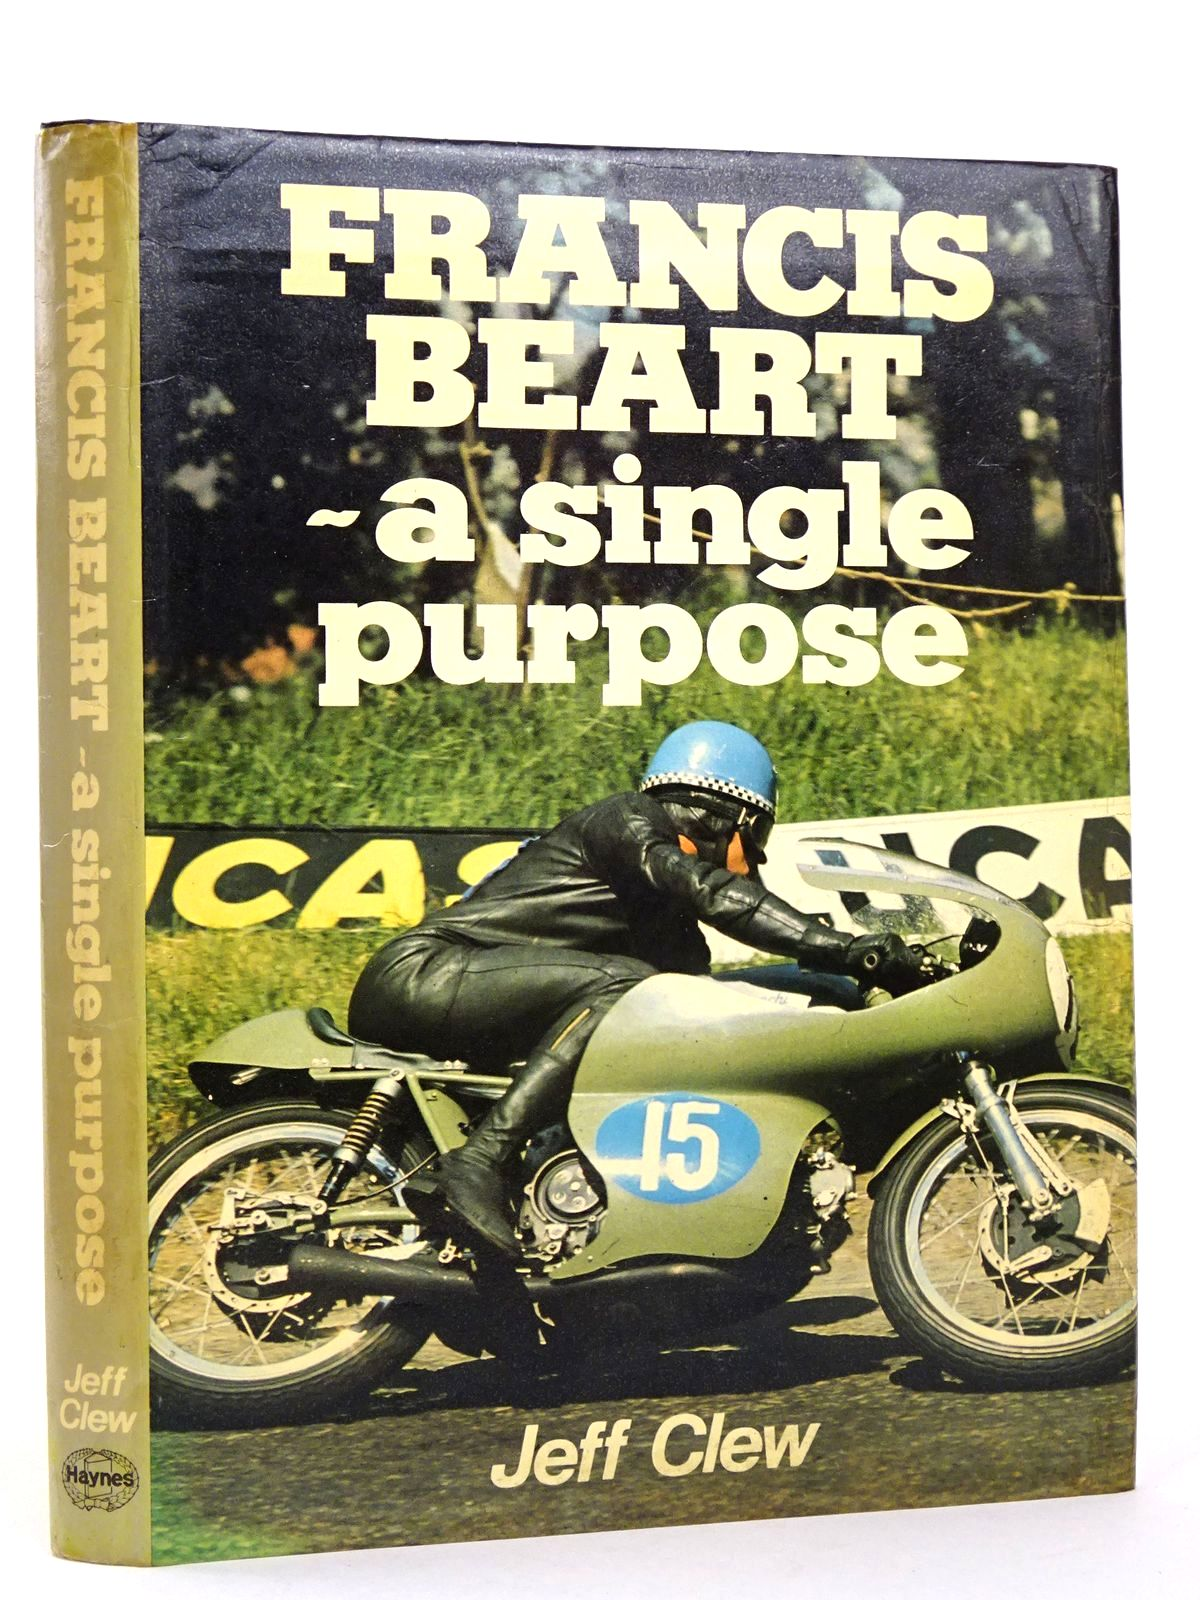 Photo of FRANCIS BEART - A SINGLE PURPOSE written by Clew, Jeff published by Haynes Publishing Group (STOCK CODE: 1818605)  for sale by Stella & Rose's Books